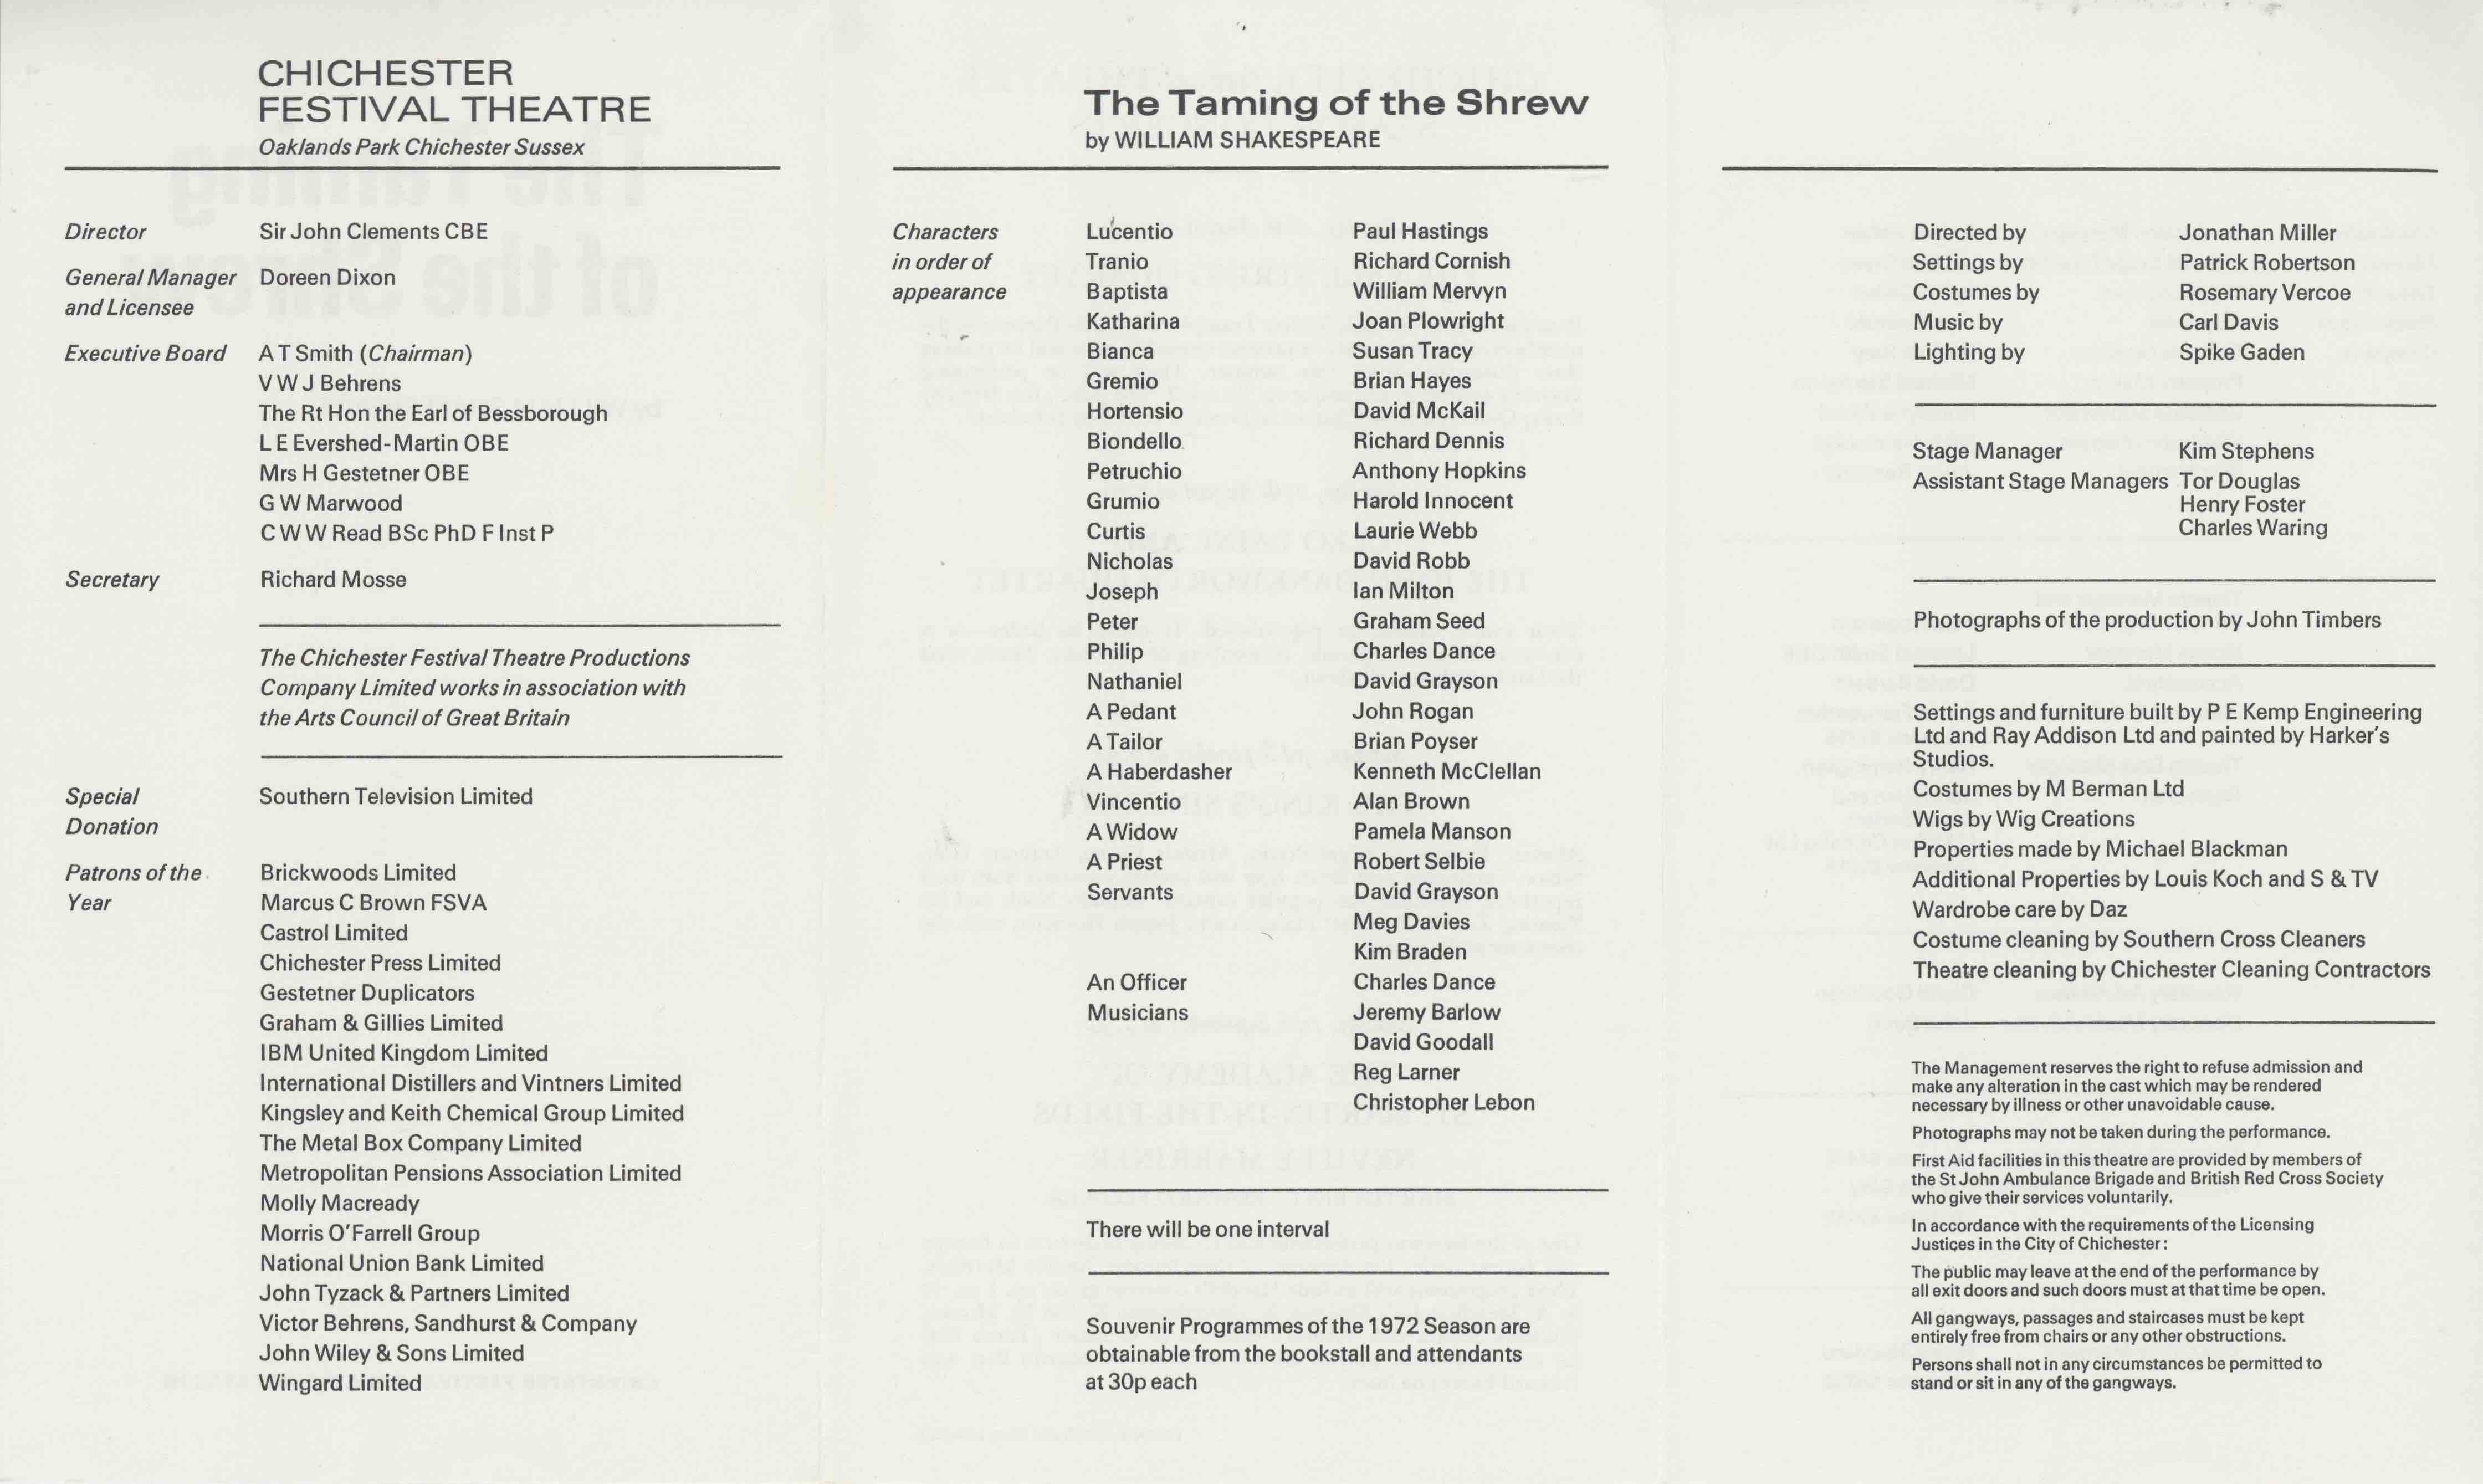 the shrewish character of katherina in the taming of the shrew by william shakespeare Taming of the shrew by william shakespeare  it is baptista who offers a  second dowry to petruchio for taming his untamable shrewish daughter,  katherine.